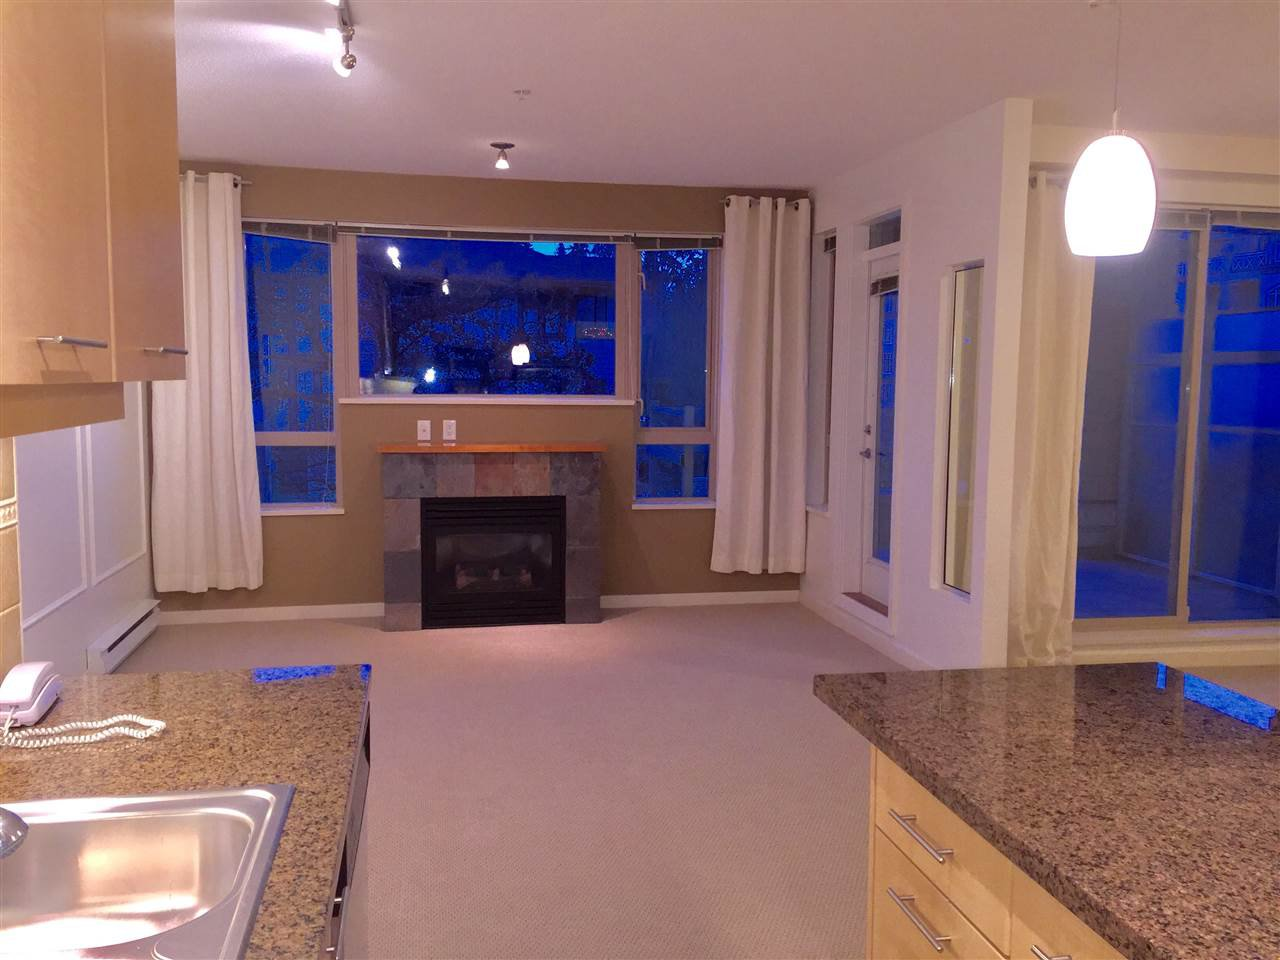 """Photo 5: Photos: 221 530 RAVENWOODS Drive in North Vancouver: Roche Point Condo for sale in """"SEASONS SOUTH AT RAVENWOODS"""" : MLS®# R2130973"""